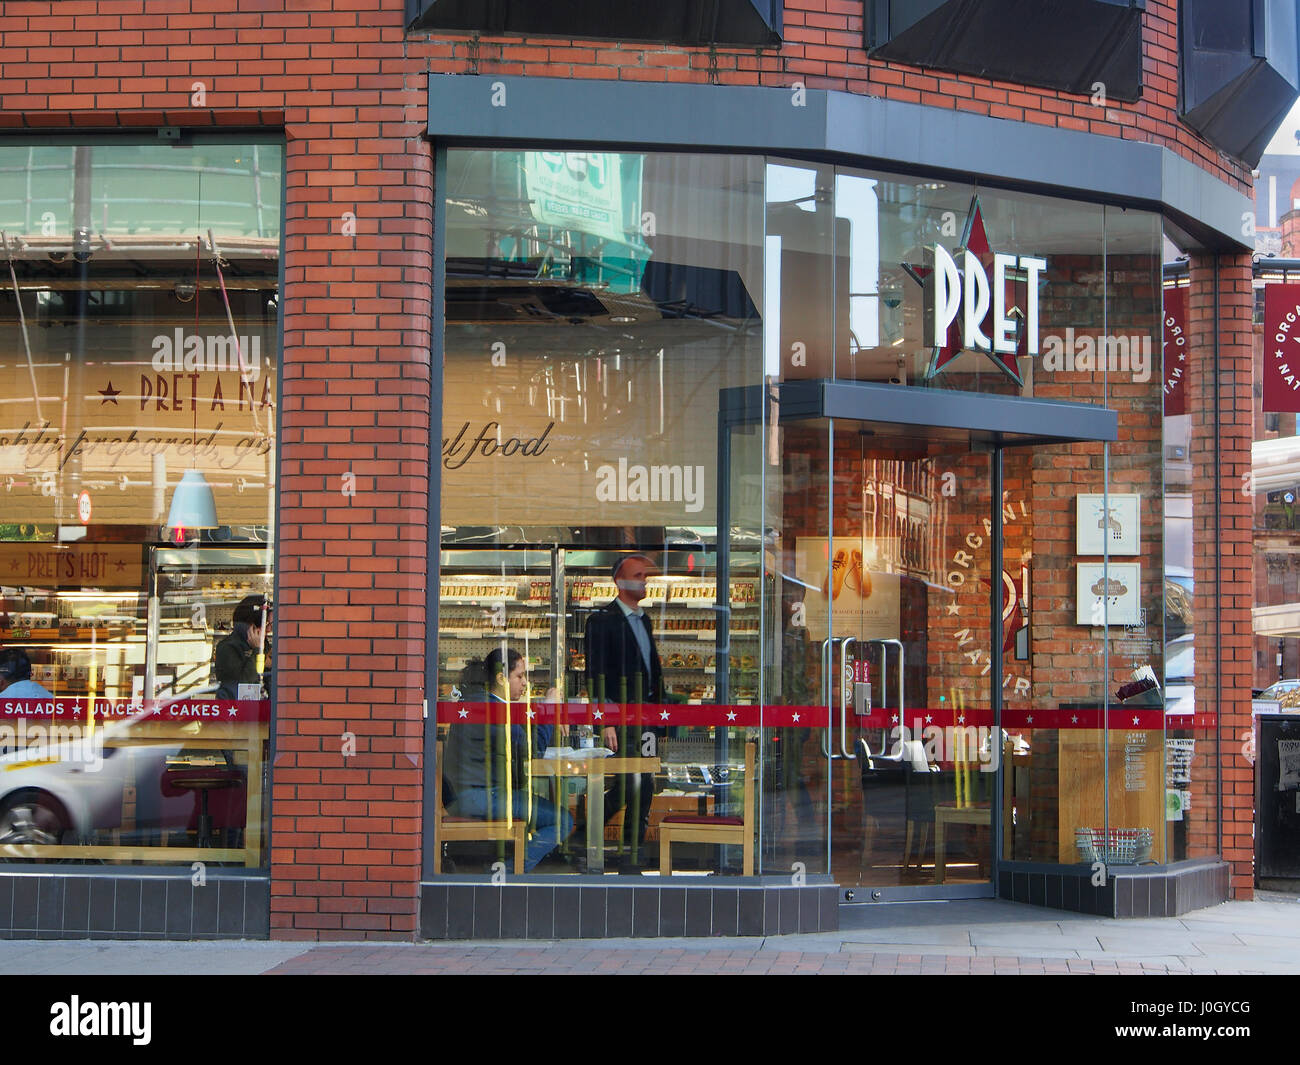 Exterior Shot Of The Of The Coffee Shop Cafe Pret A Manger